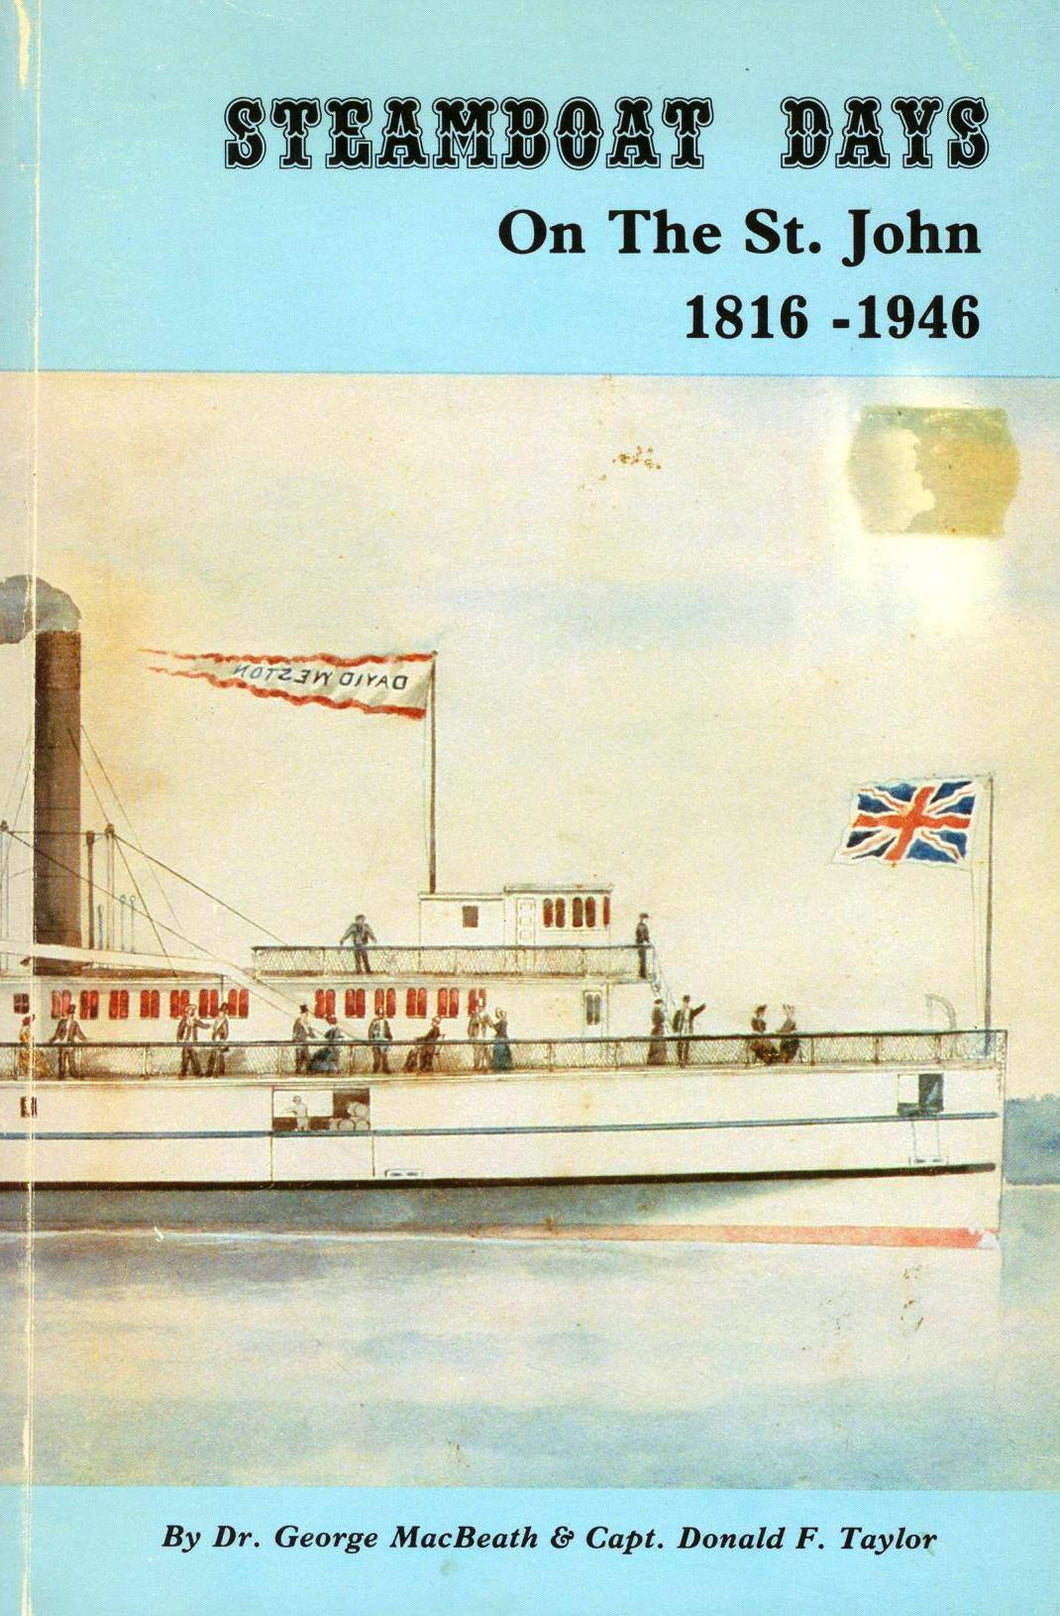 Steamboat Days: An Illustrated History of The Steamboat Era On The St. John River 1816-1946